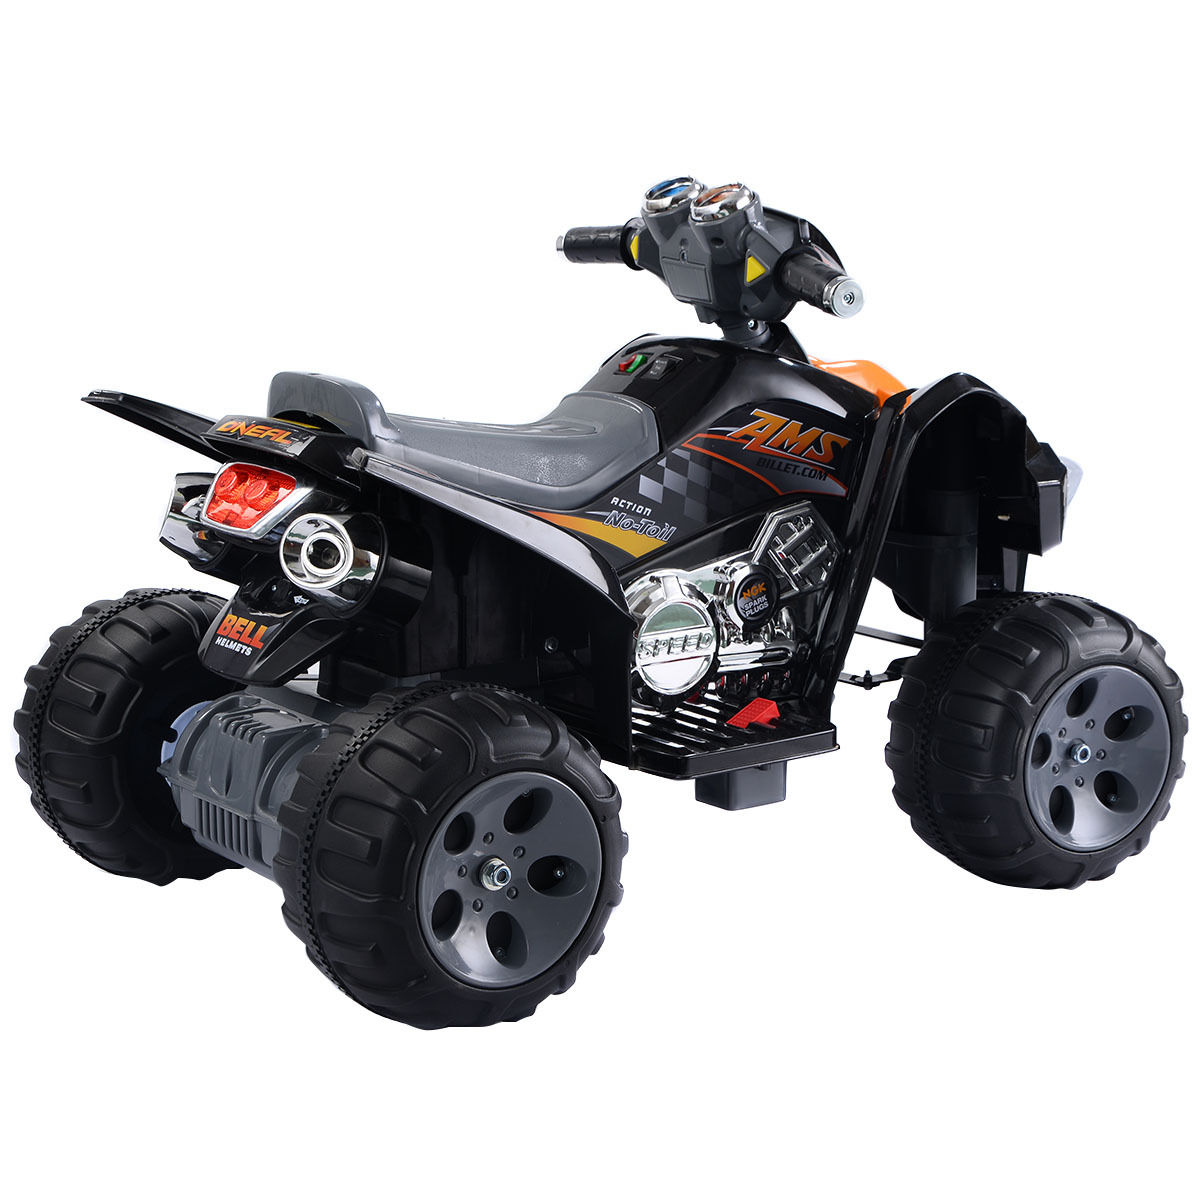 Quad 4 Engine Diagram 2 Wiring Library Costway Kids Ride On Atv Wheeler Electric Toy Car 12v Battery Power Led Lights